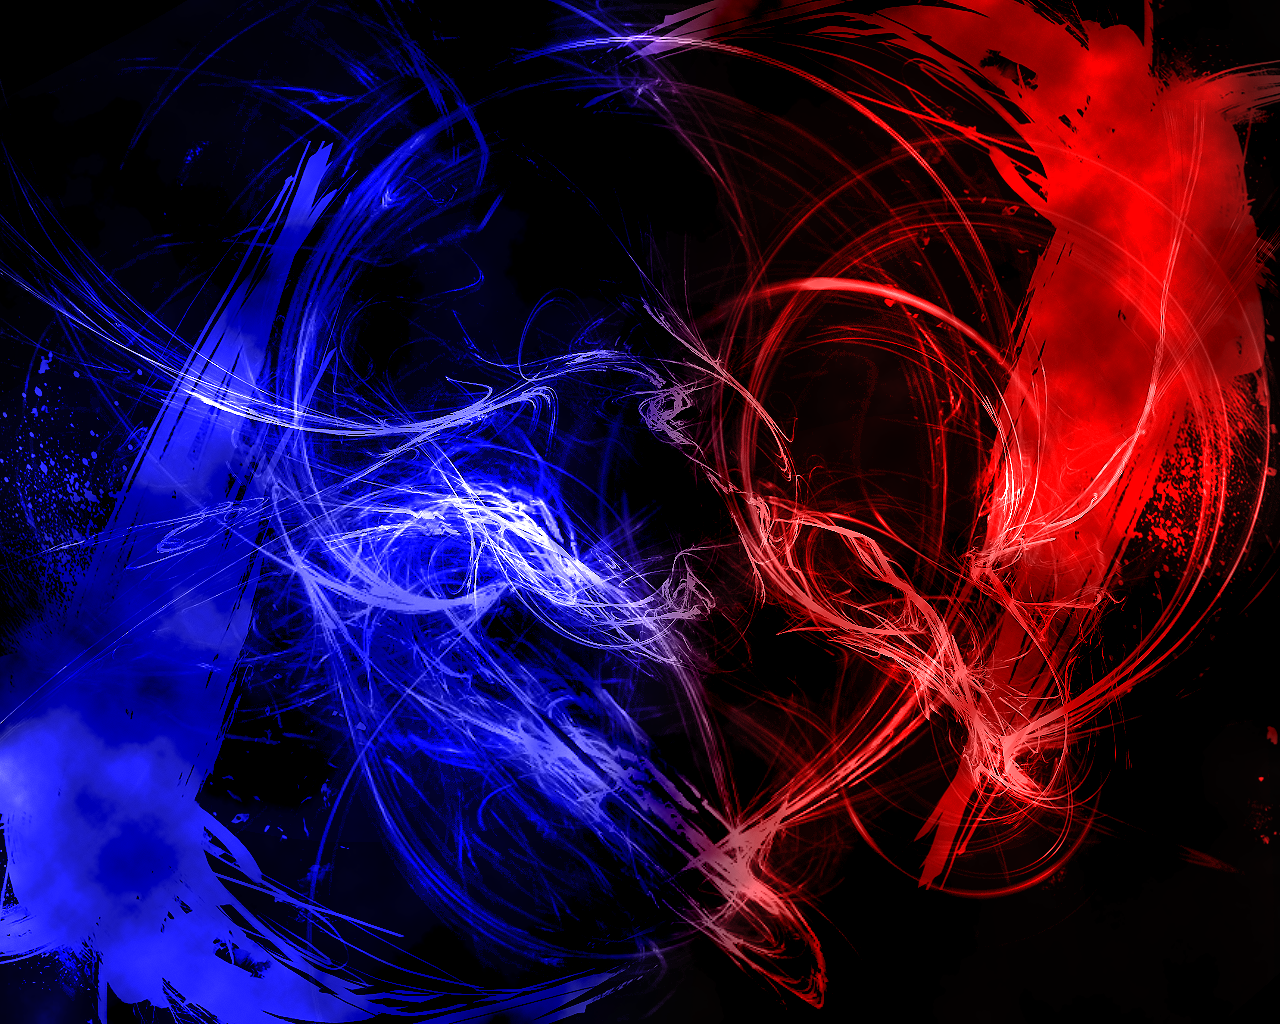 Blue and Red Wallpaper - WallpaperSafari